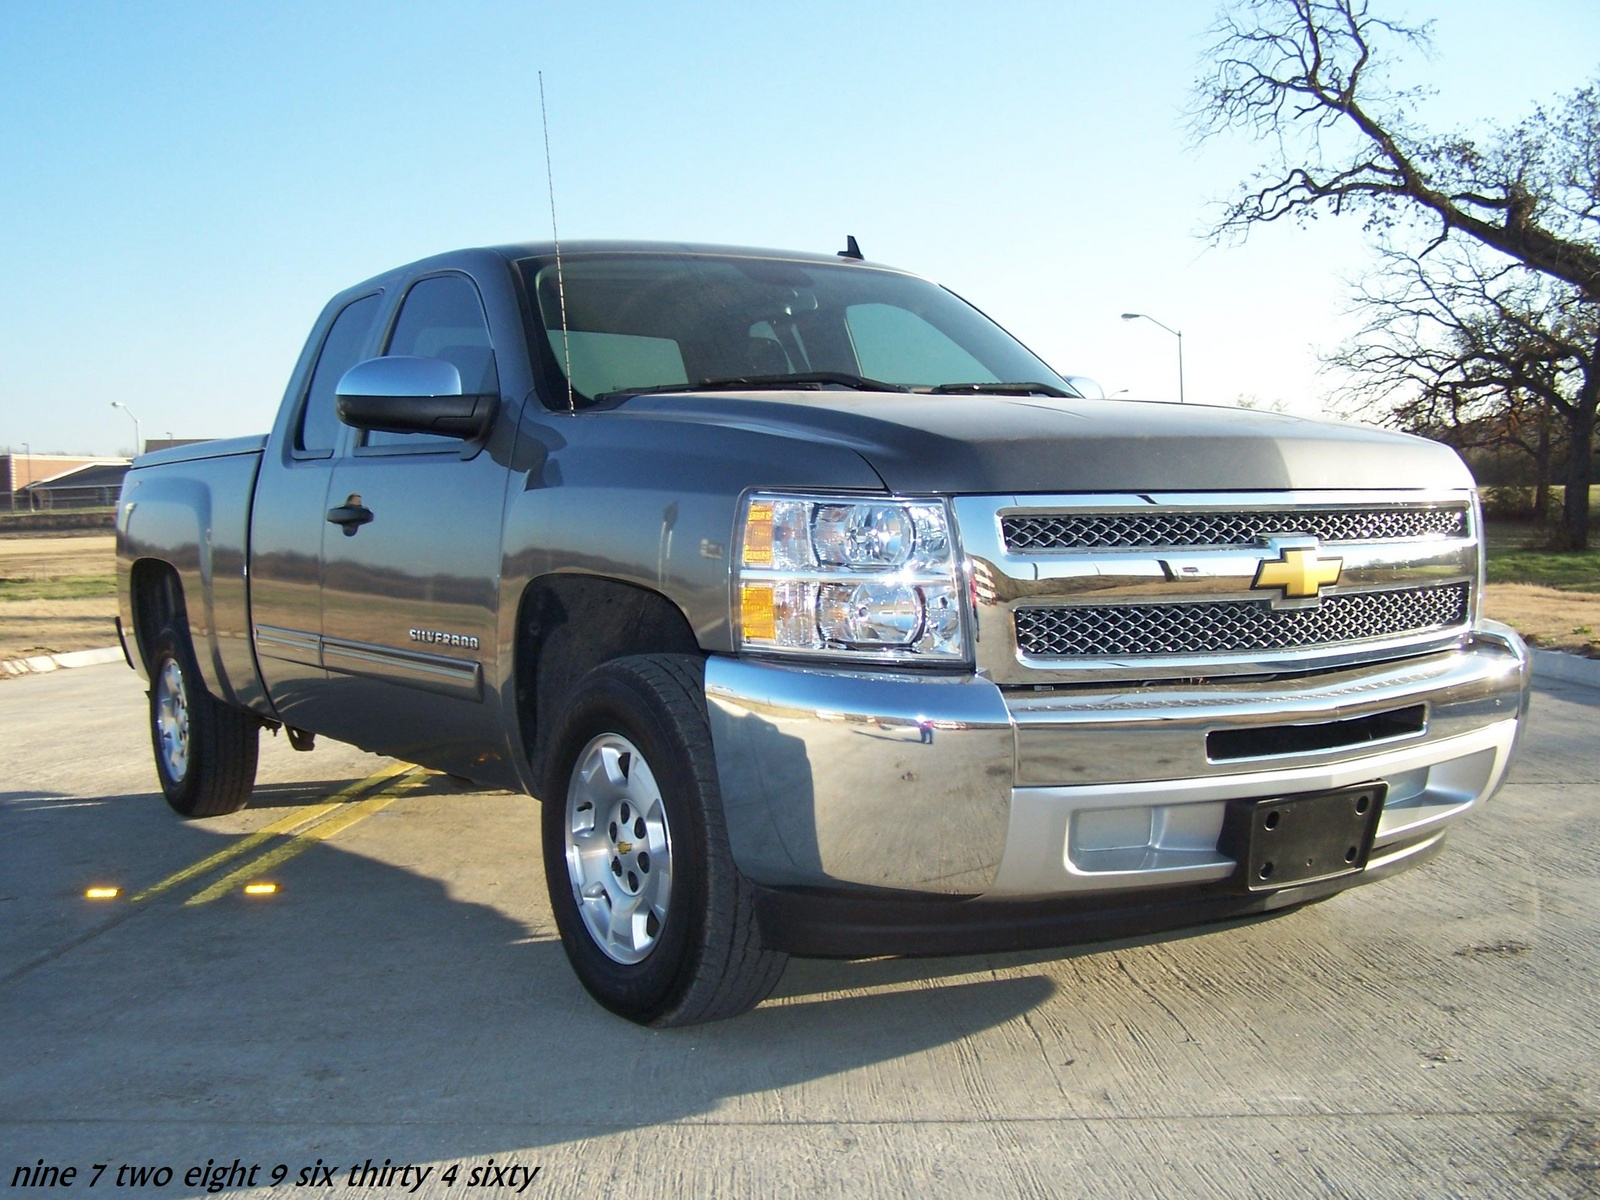 2012 chevrolet silverado 1500 pictures cargurus. Black Bedroom Furniture Sets. Home Design Ideas